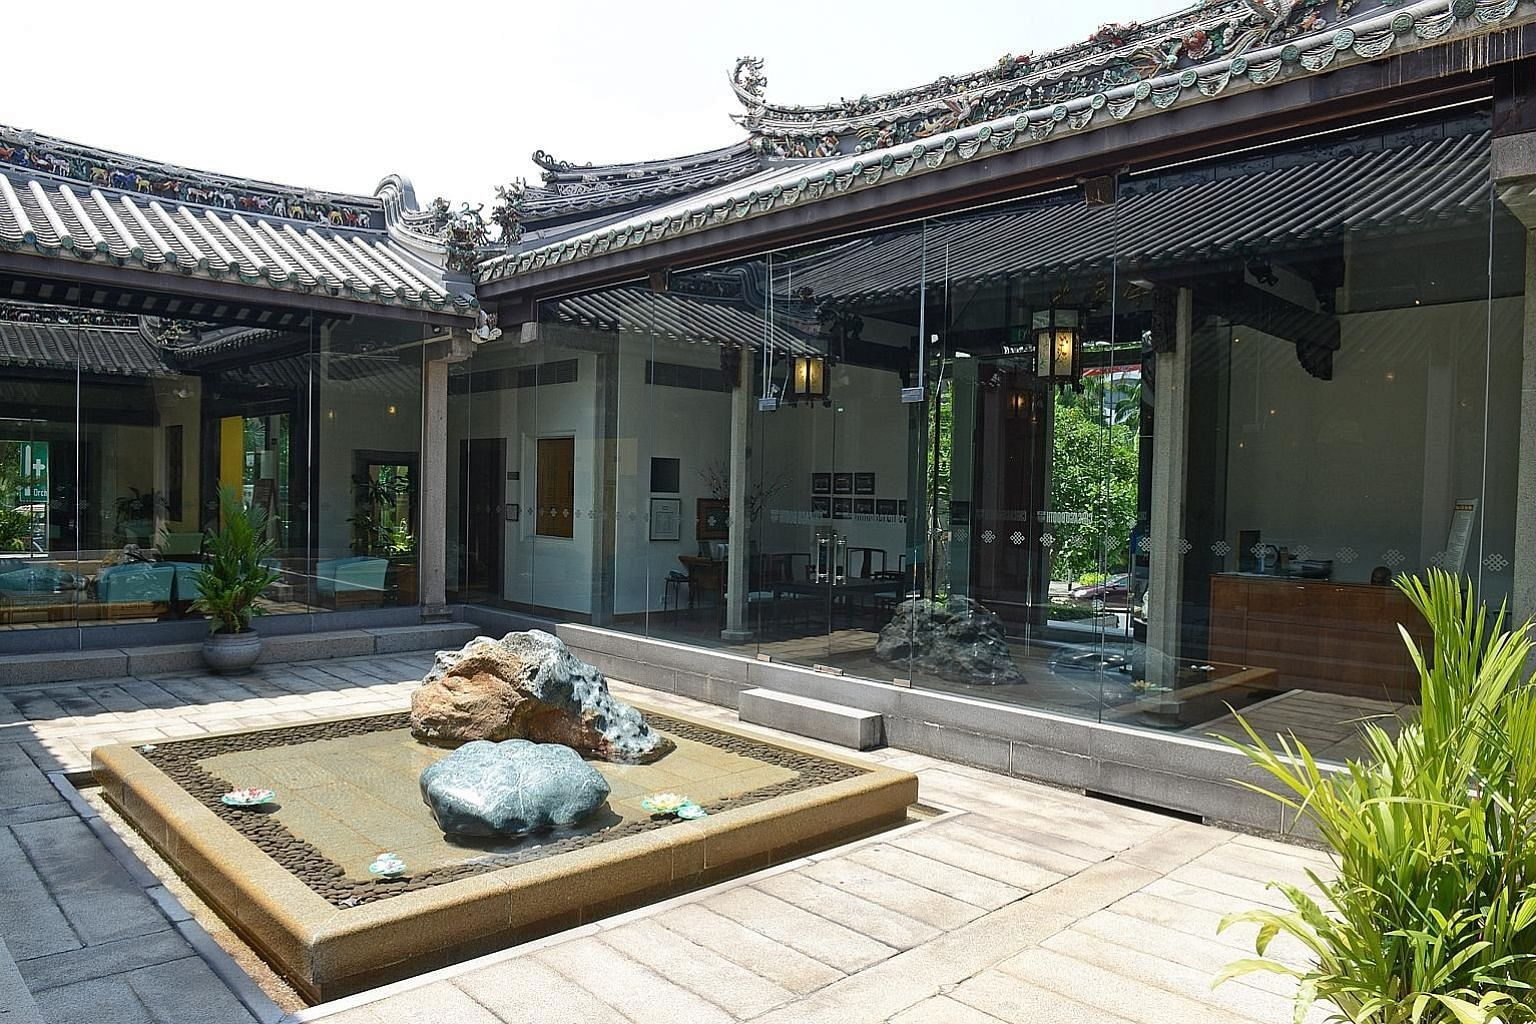 The House of Tan Yeok Nee, built between 1882 and 1885 in the traditional southern Chinese style, with large internal courtyards and decorative wood carvings, was gazetted as a national monument on Nov 19, 1974.